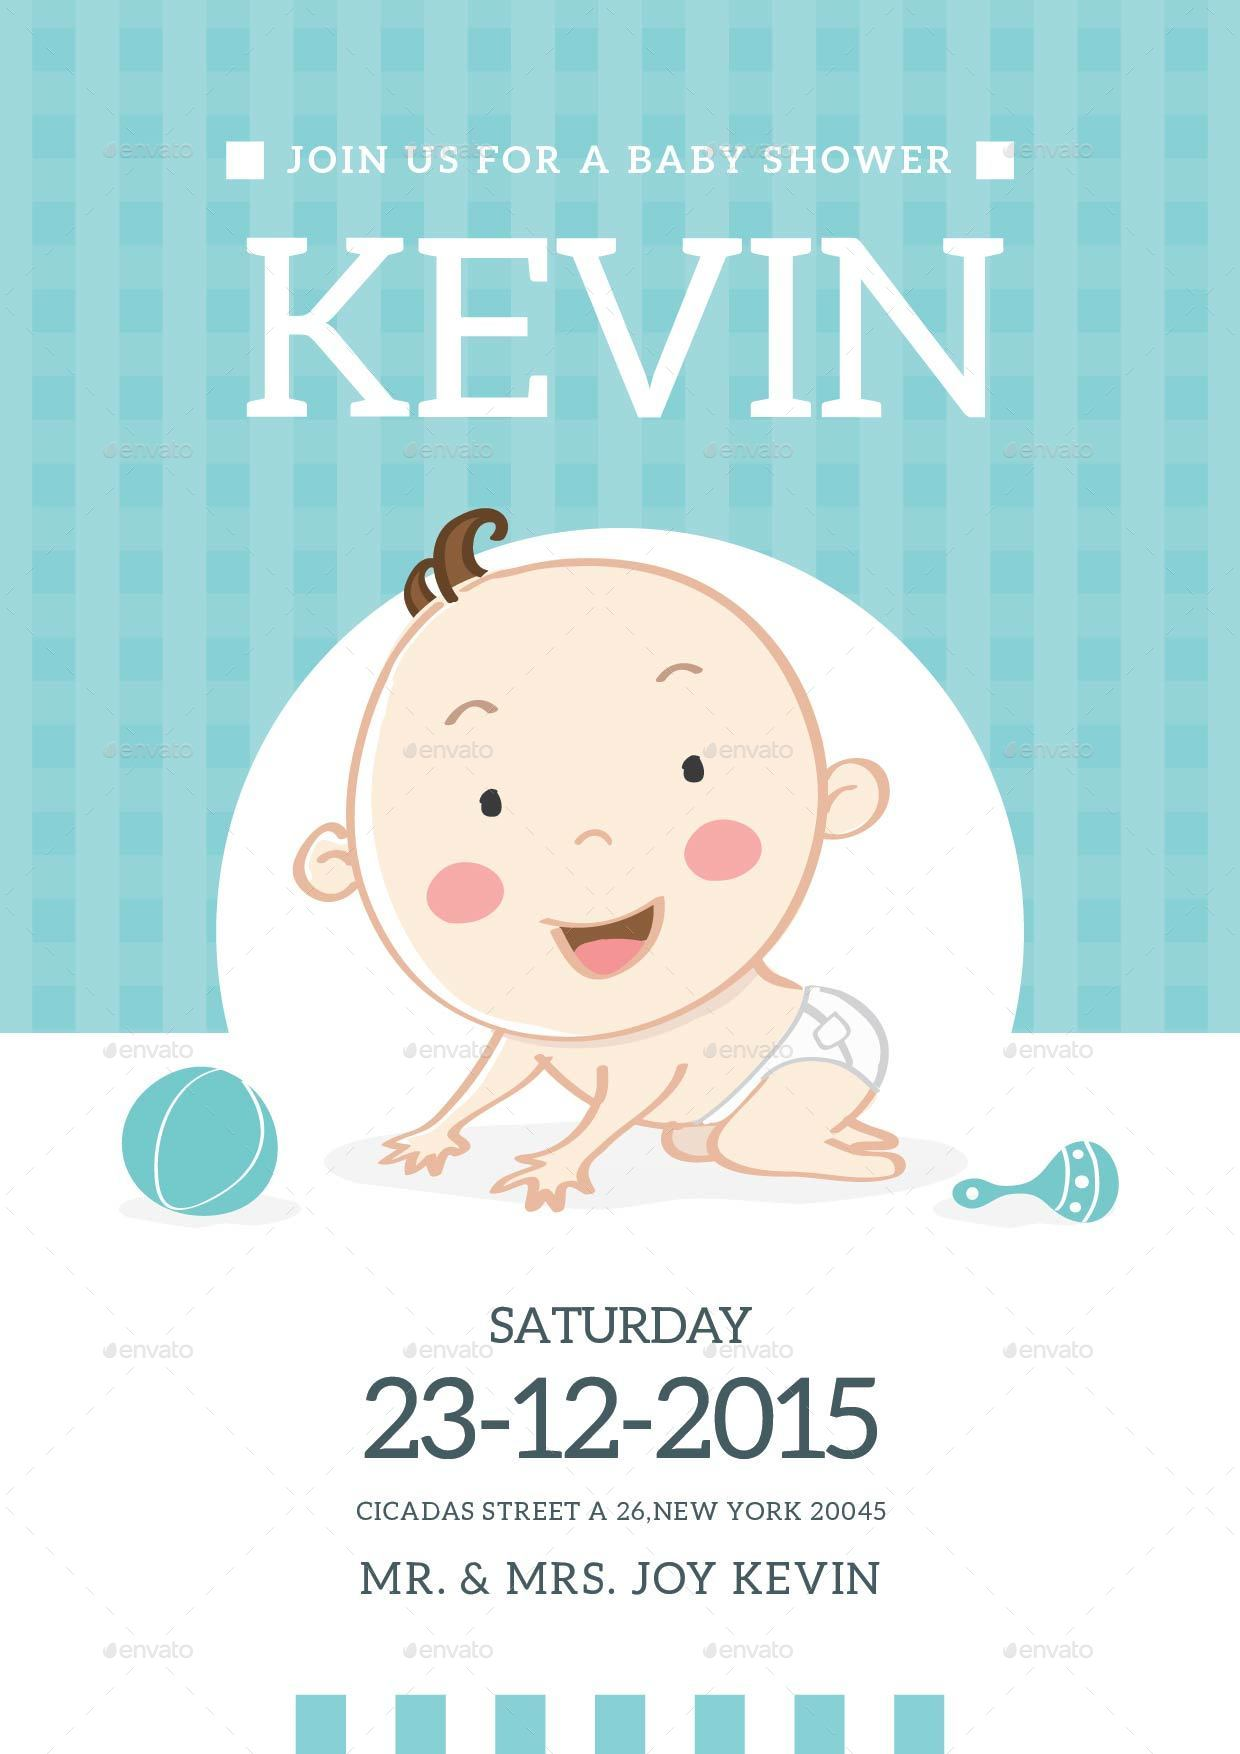 Baby Shower Invitation Card by lilynthesweetpea | GraphicRiver